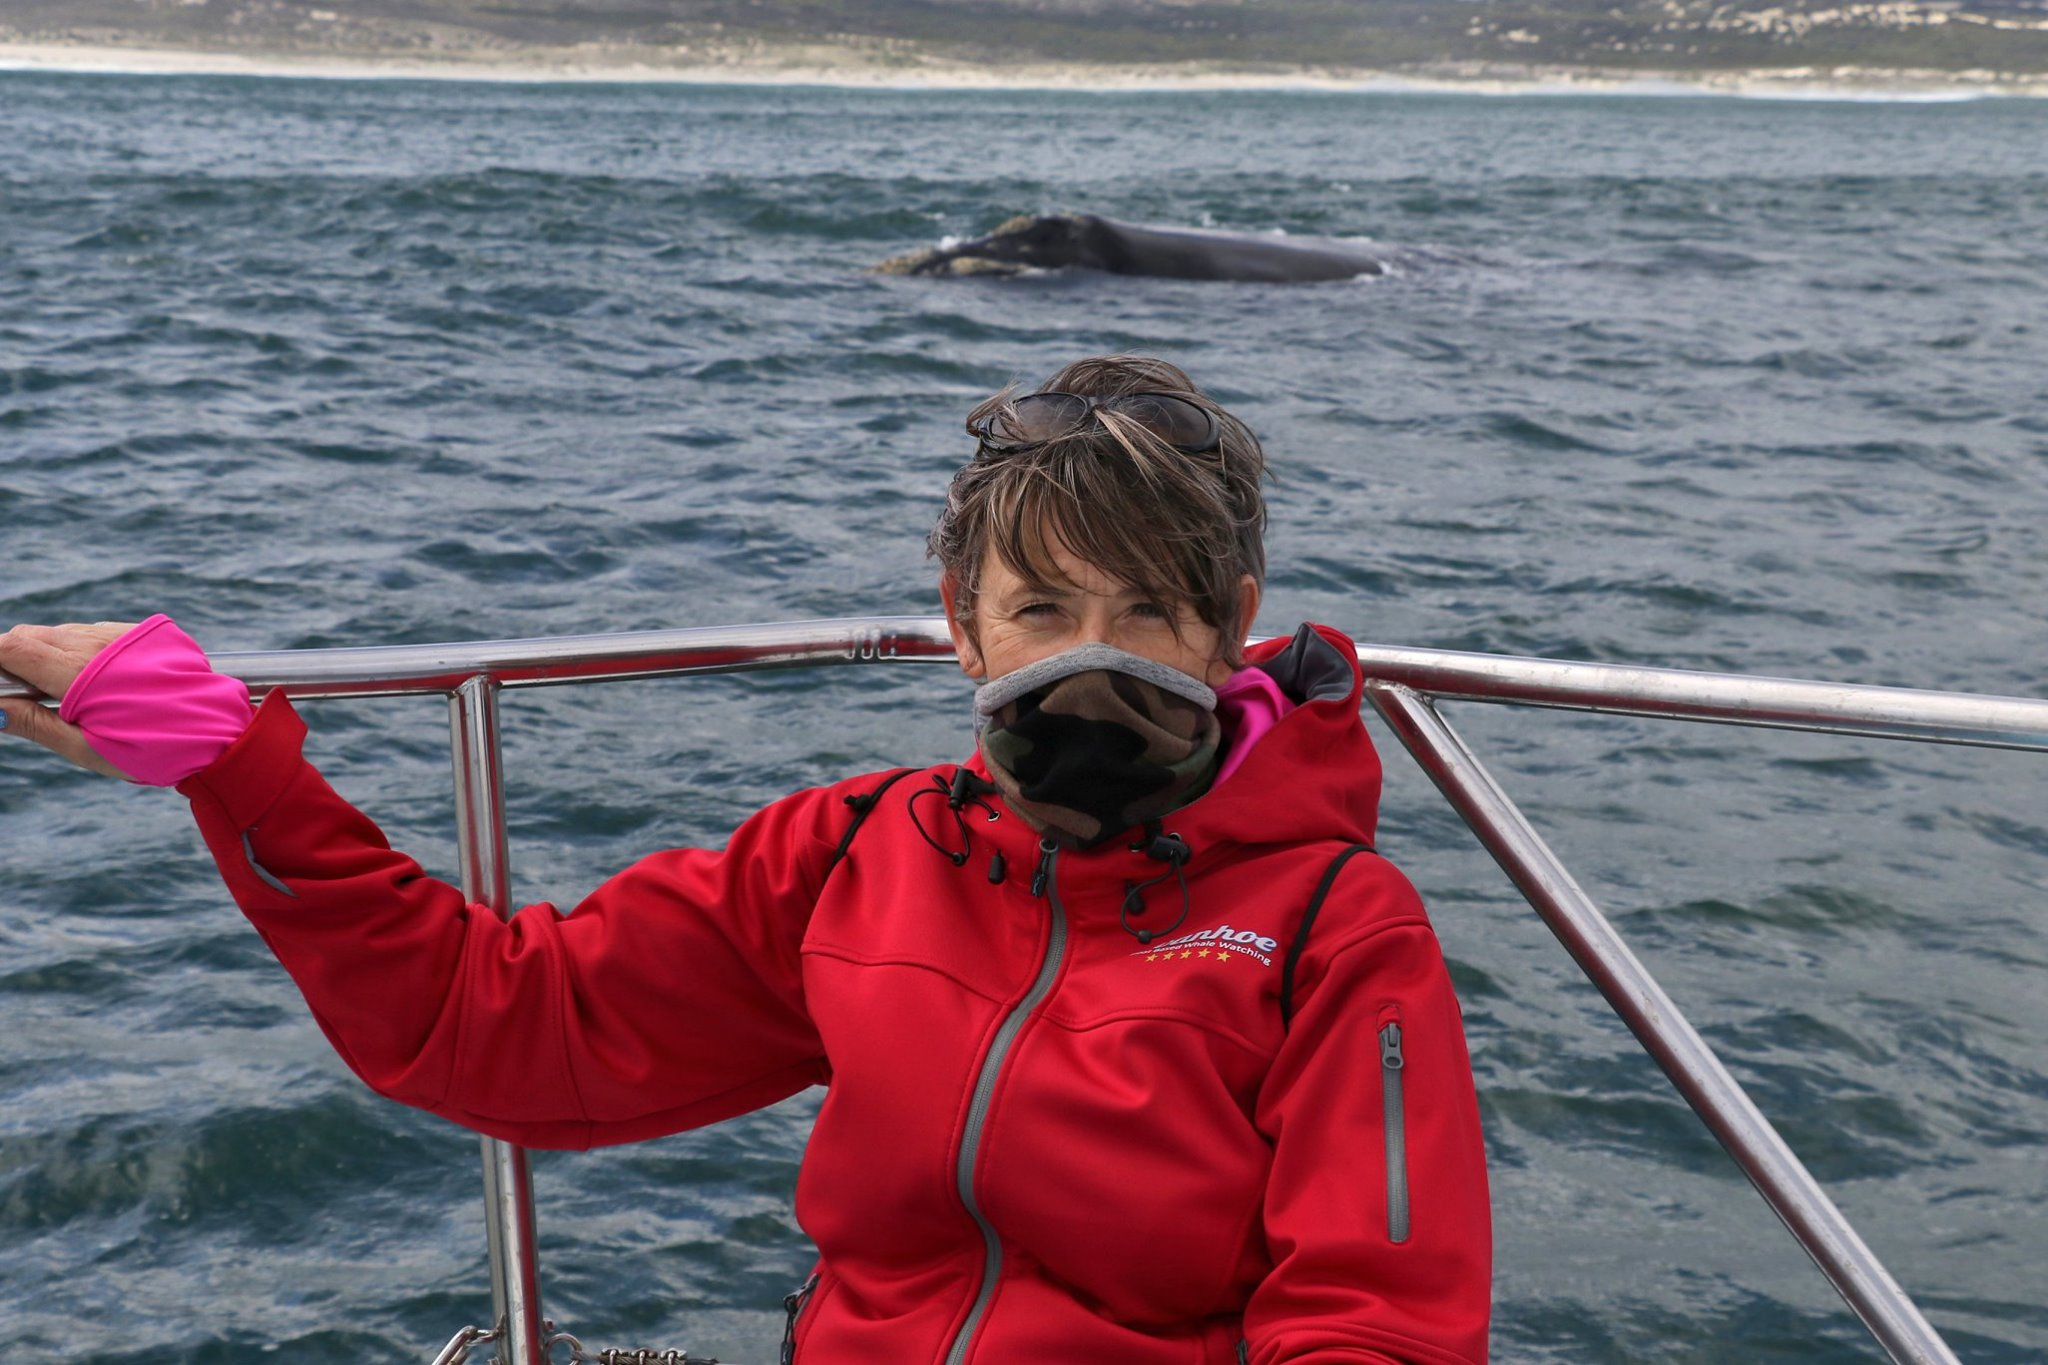 Enjoying the whales whilst staying safe.